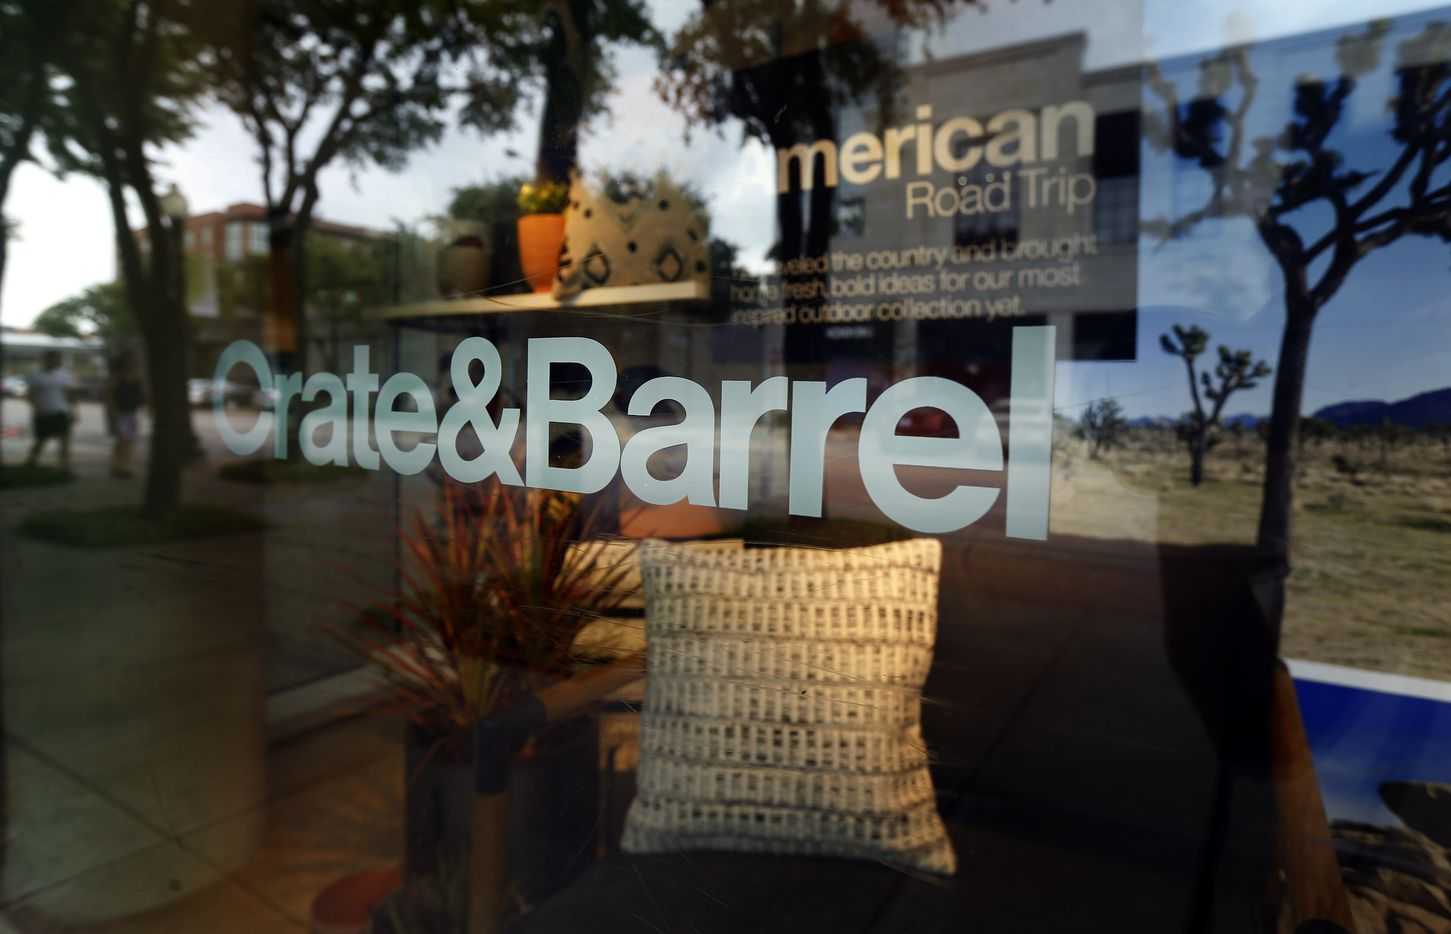 A Crate and Barrel window display is seen at their store on Knox St. in Dallas, Wednesday, May 1, 2019. Crate & Barrel likes Knox Street so much it's bringing a second store to the district. The Chicago-based retailer has a sister chain called CB2 that's planning to open later this year just south of Knox on McKinney.